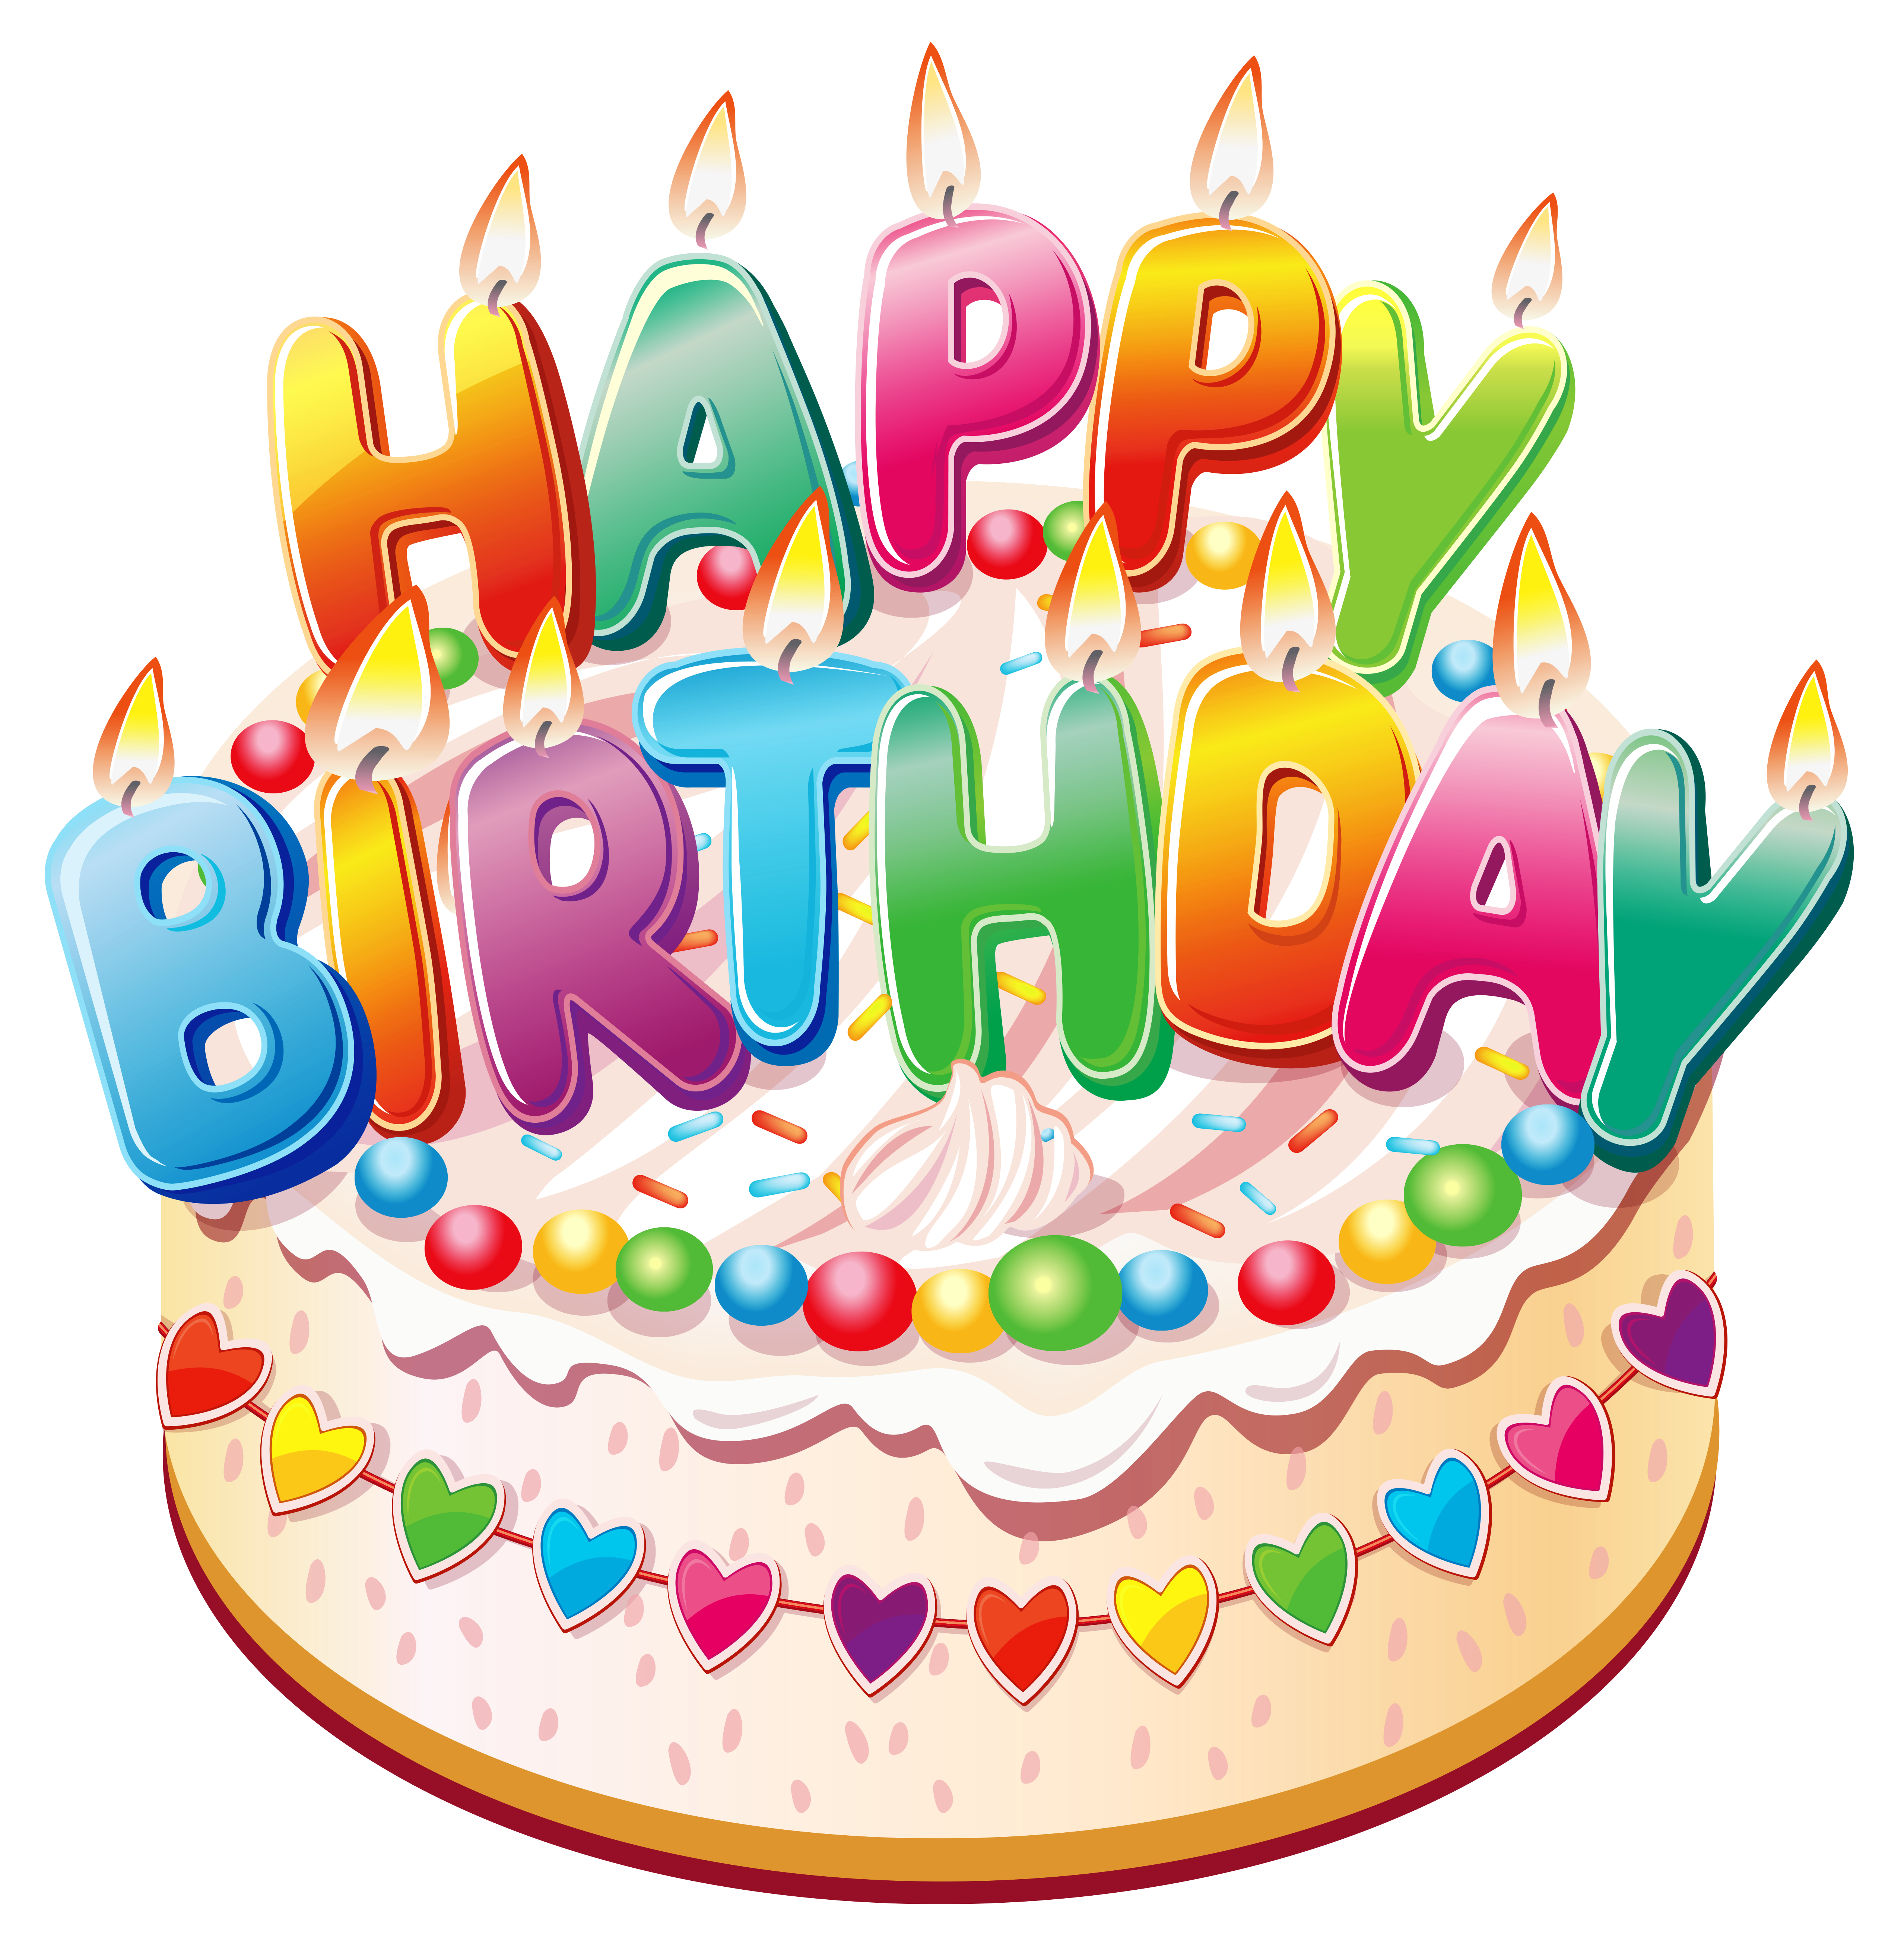 Clipart Pictures Of Birthday .-Clipart pictures of birthday .-13